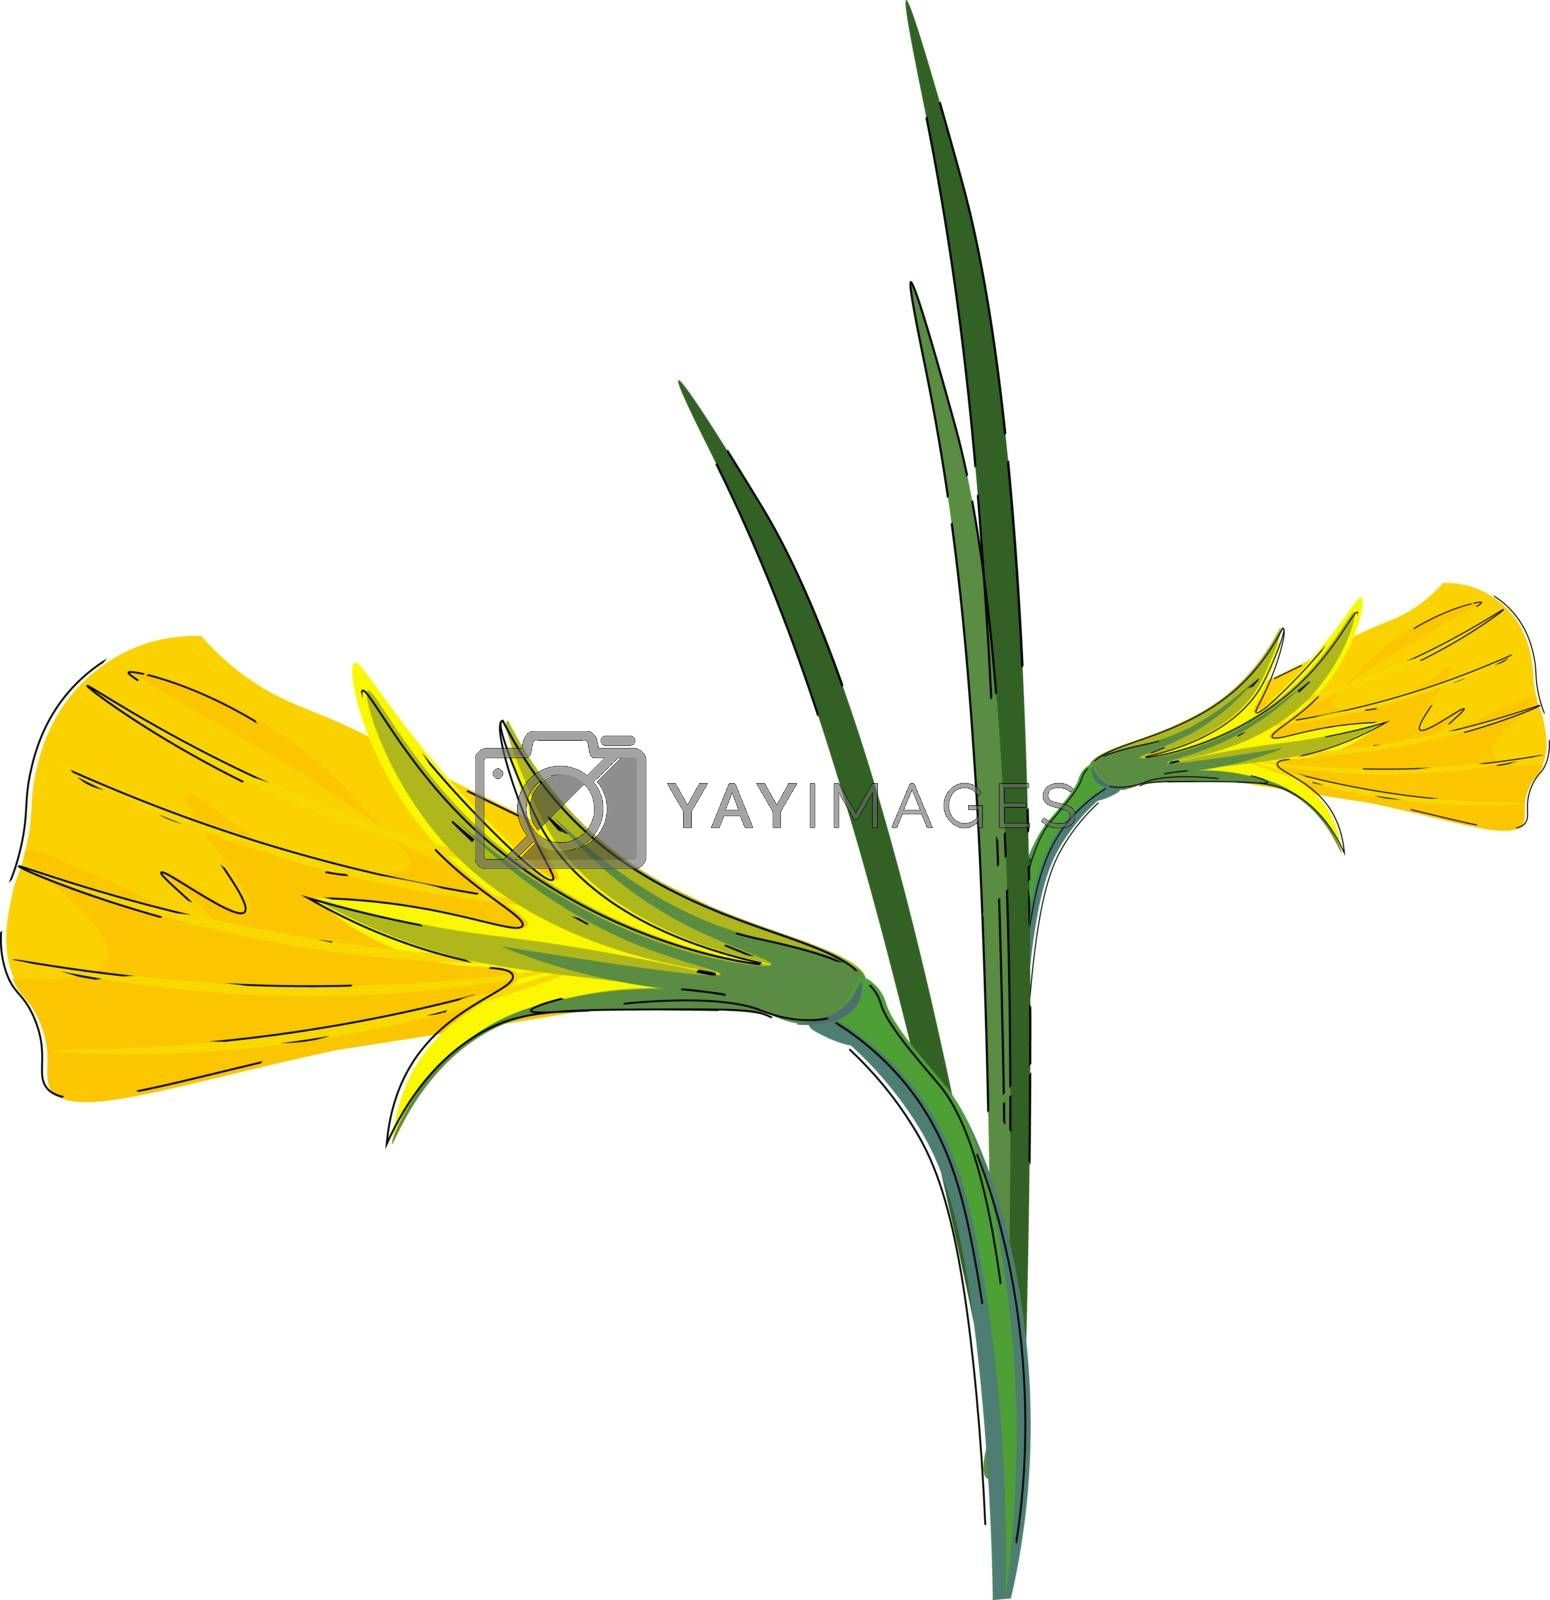 Royalty free image of Clipart of a plant with flowers blossomed as golden bells vector by Morphart